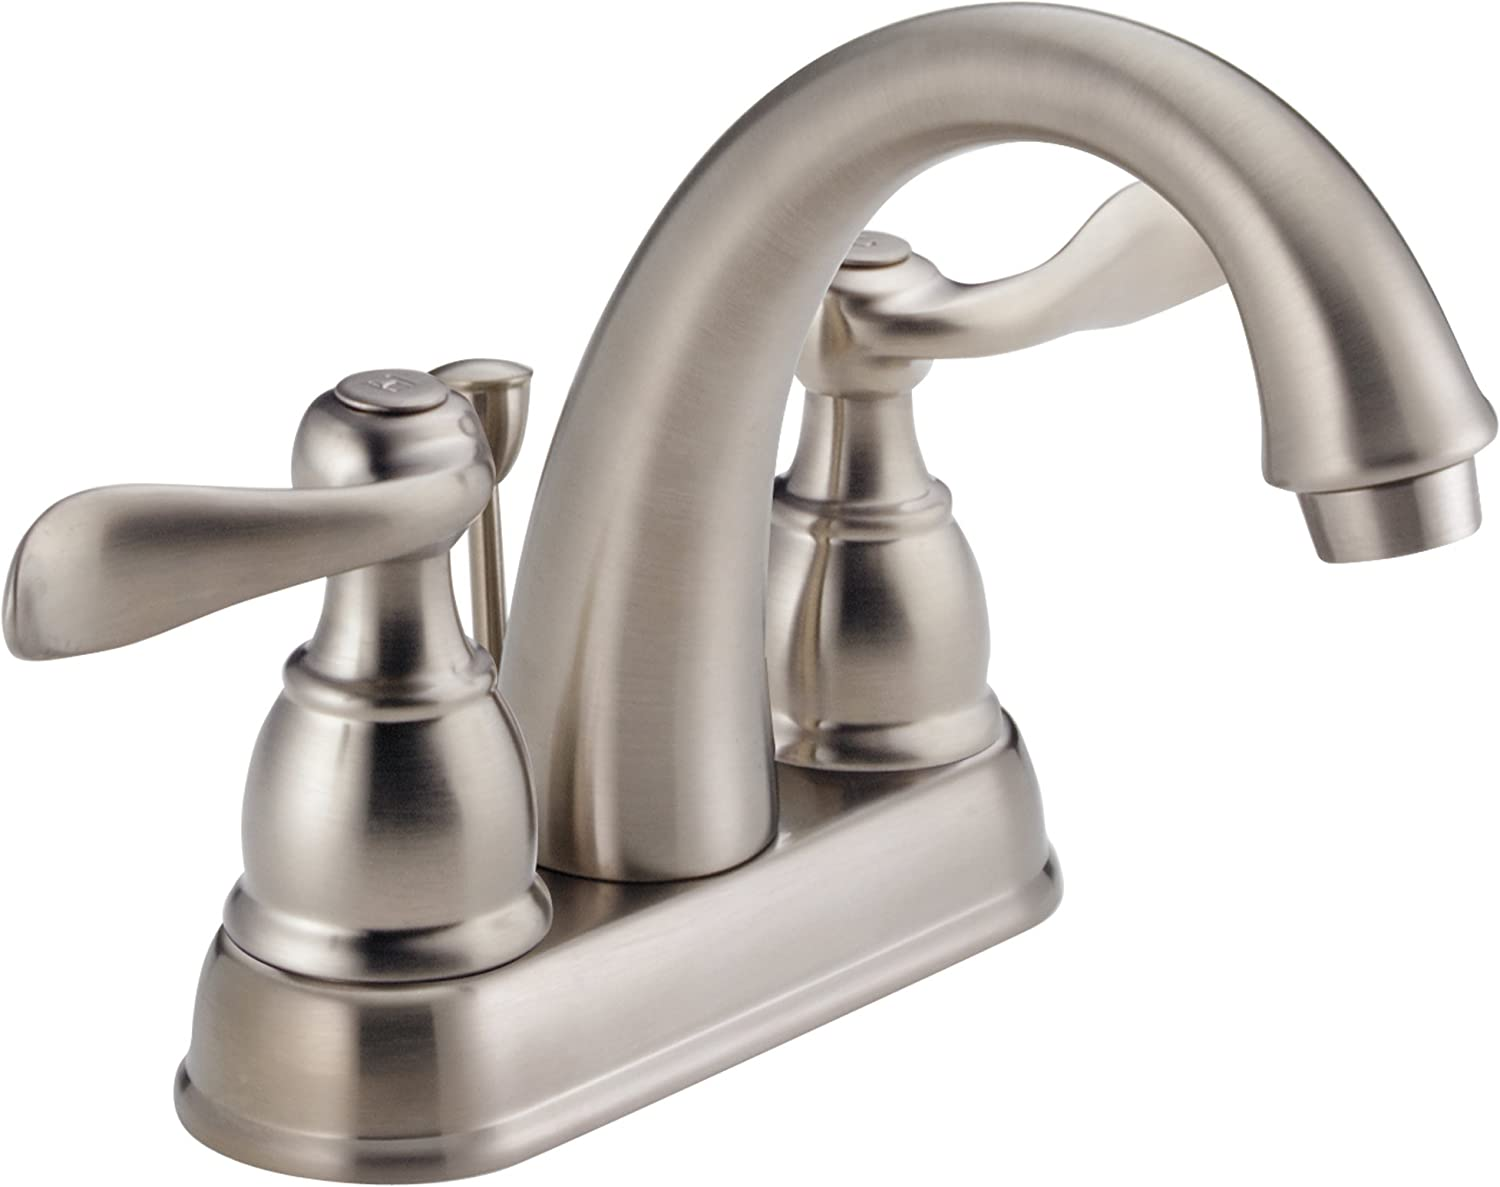 Delta Faucet Windemere Centerset Bathroom Faucet Brushed Nickel, Bathroom  Sink Faucet, Metal Drain Assembly, Stainless B20LF SS